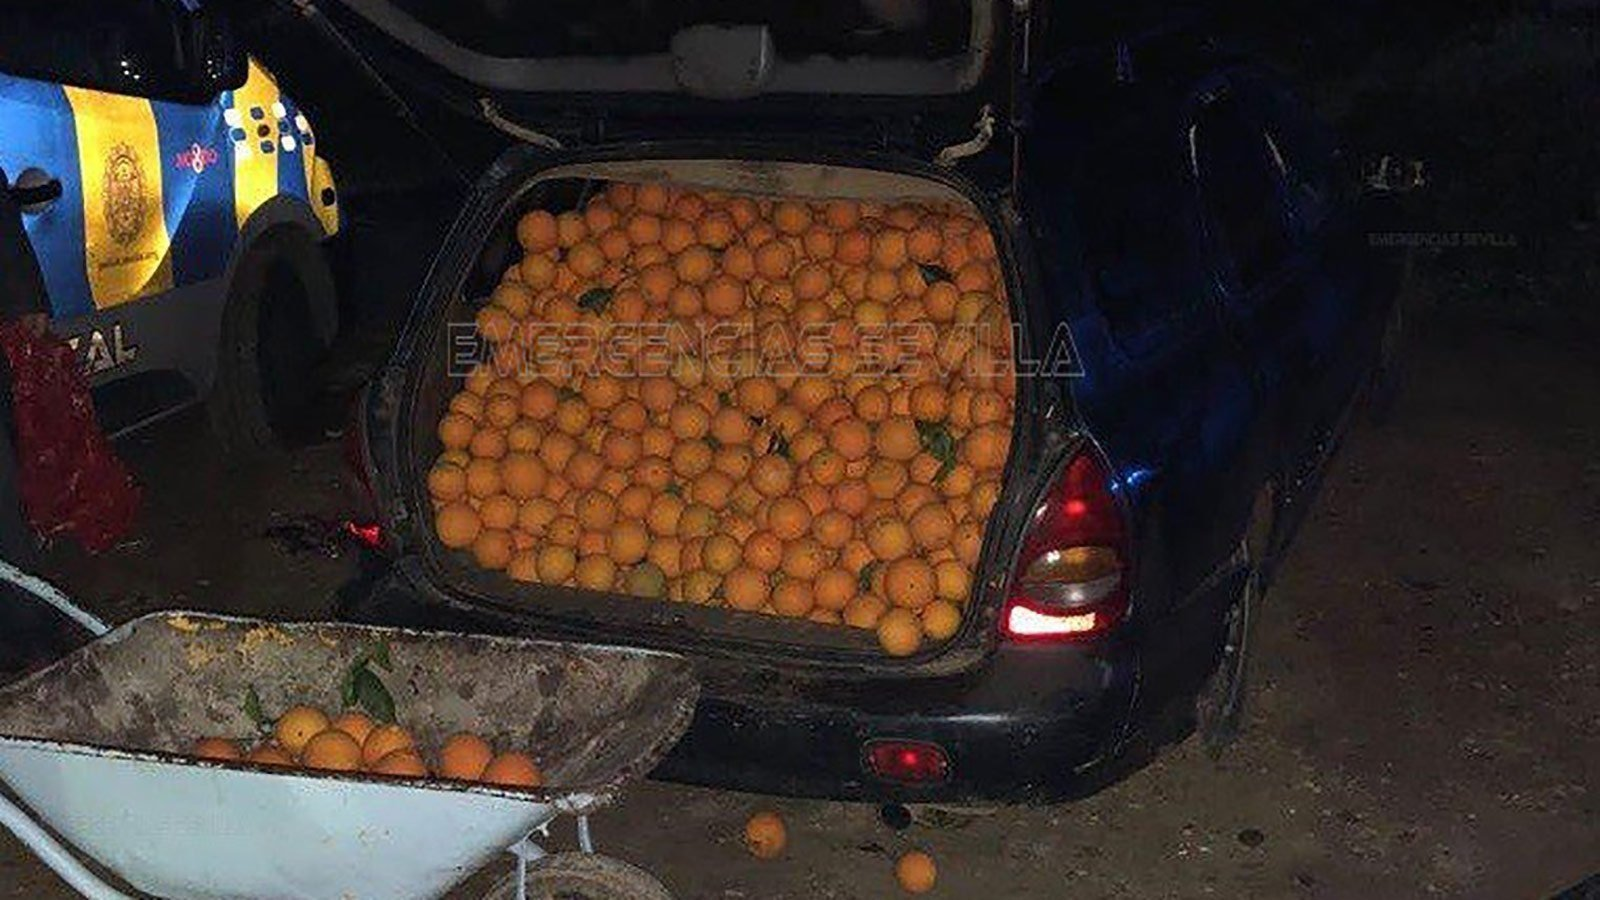 Police put the squeeze on two suspects caught with hundreds of oranges